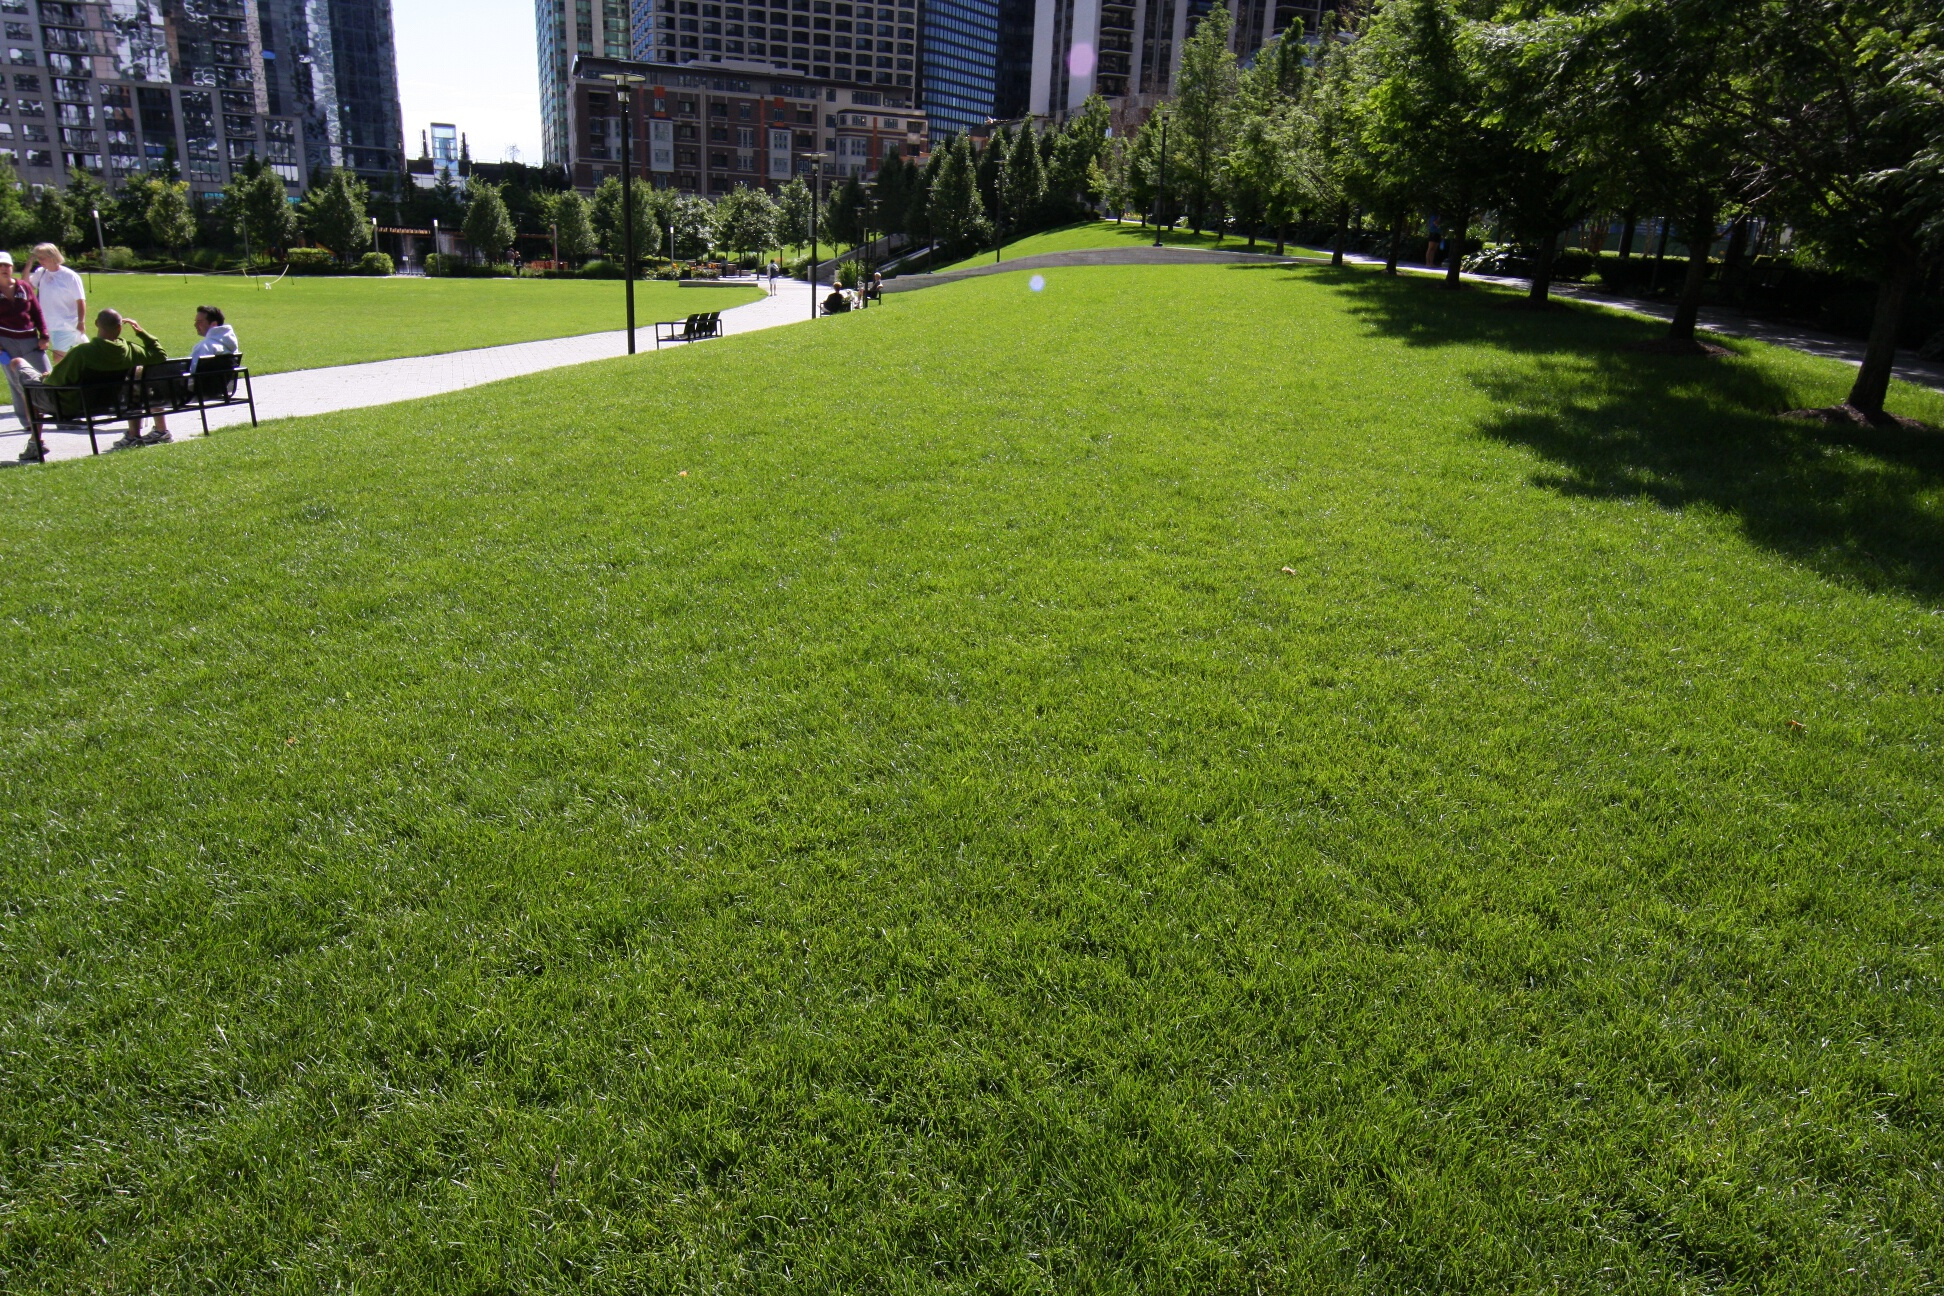 Grassy knolls in the park